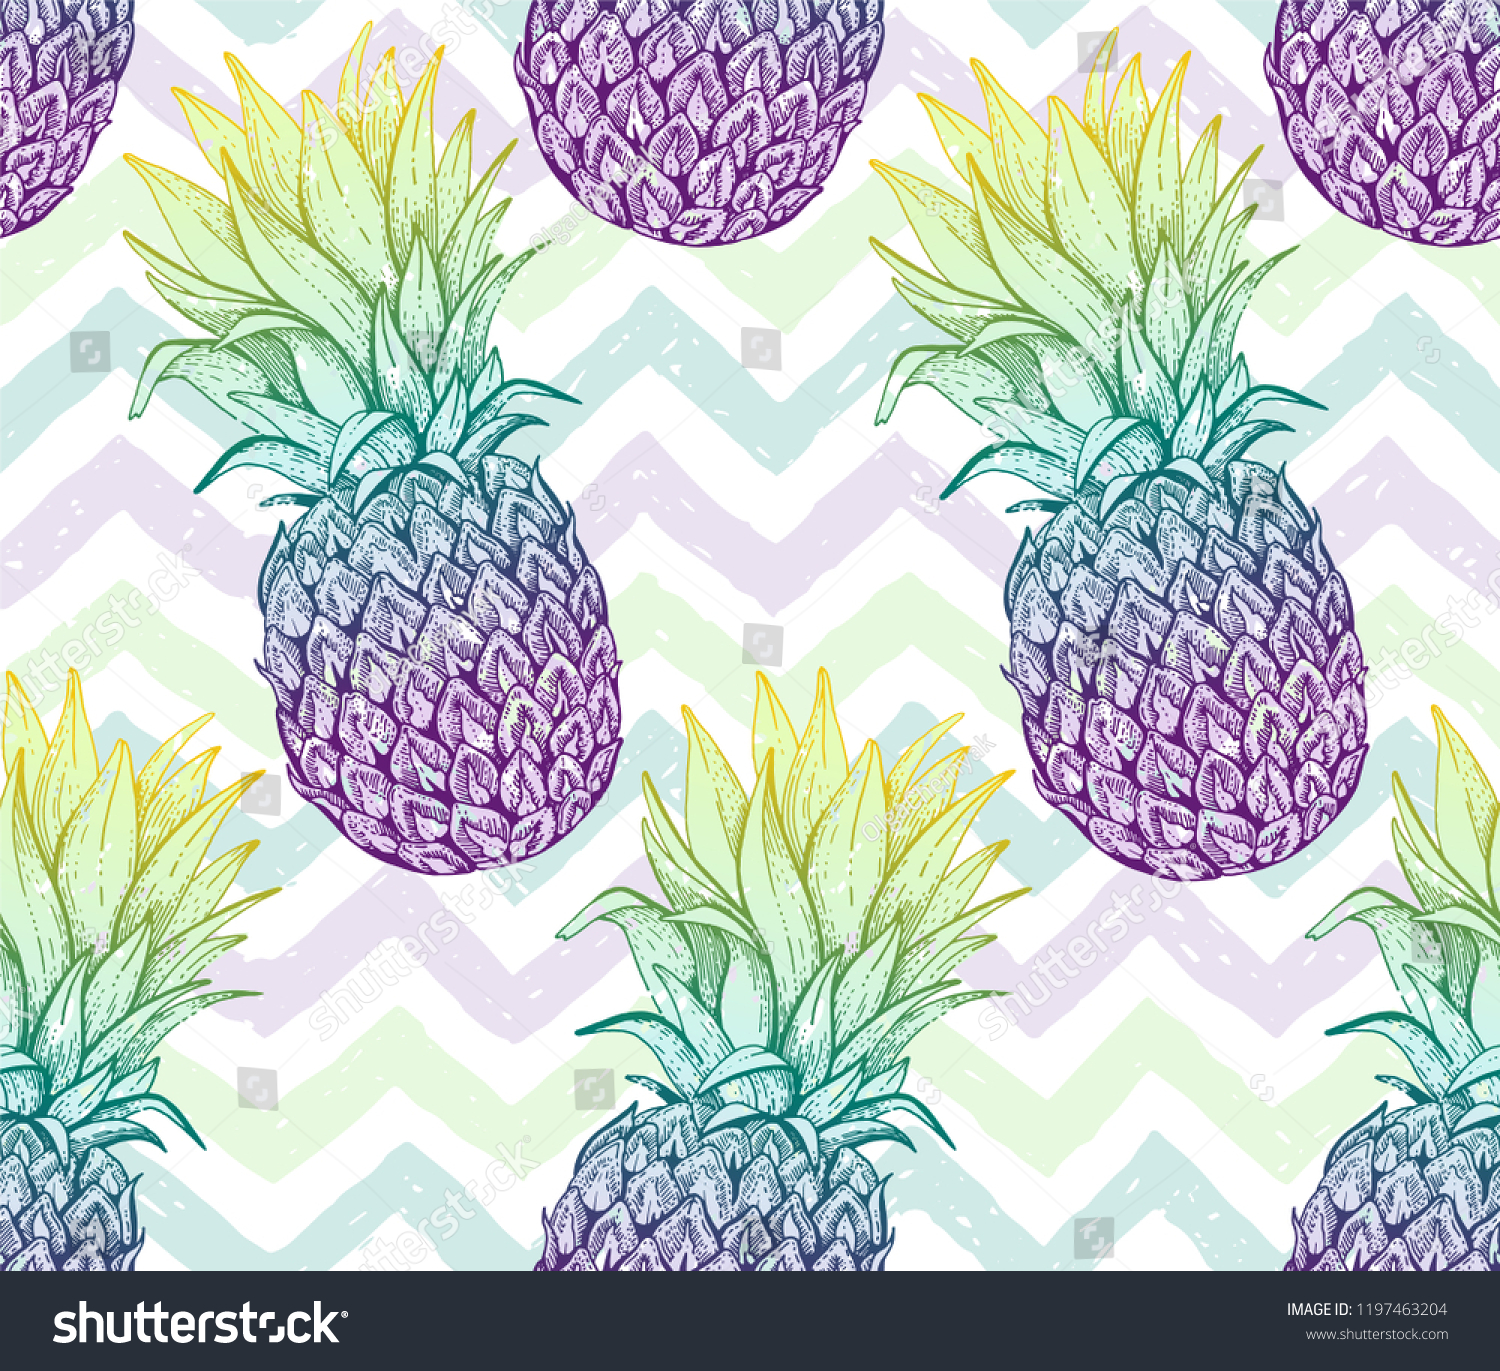 195f98bf Pineapple seamless pattern, hand drawn doodle texture. Textile print for  t-shirt.